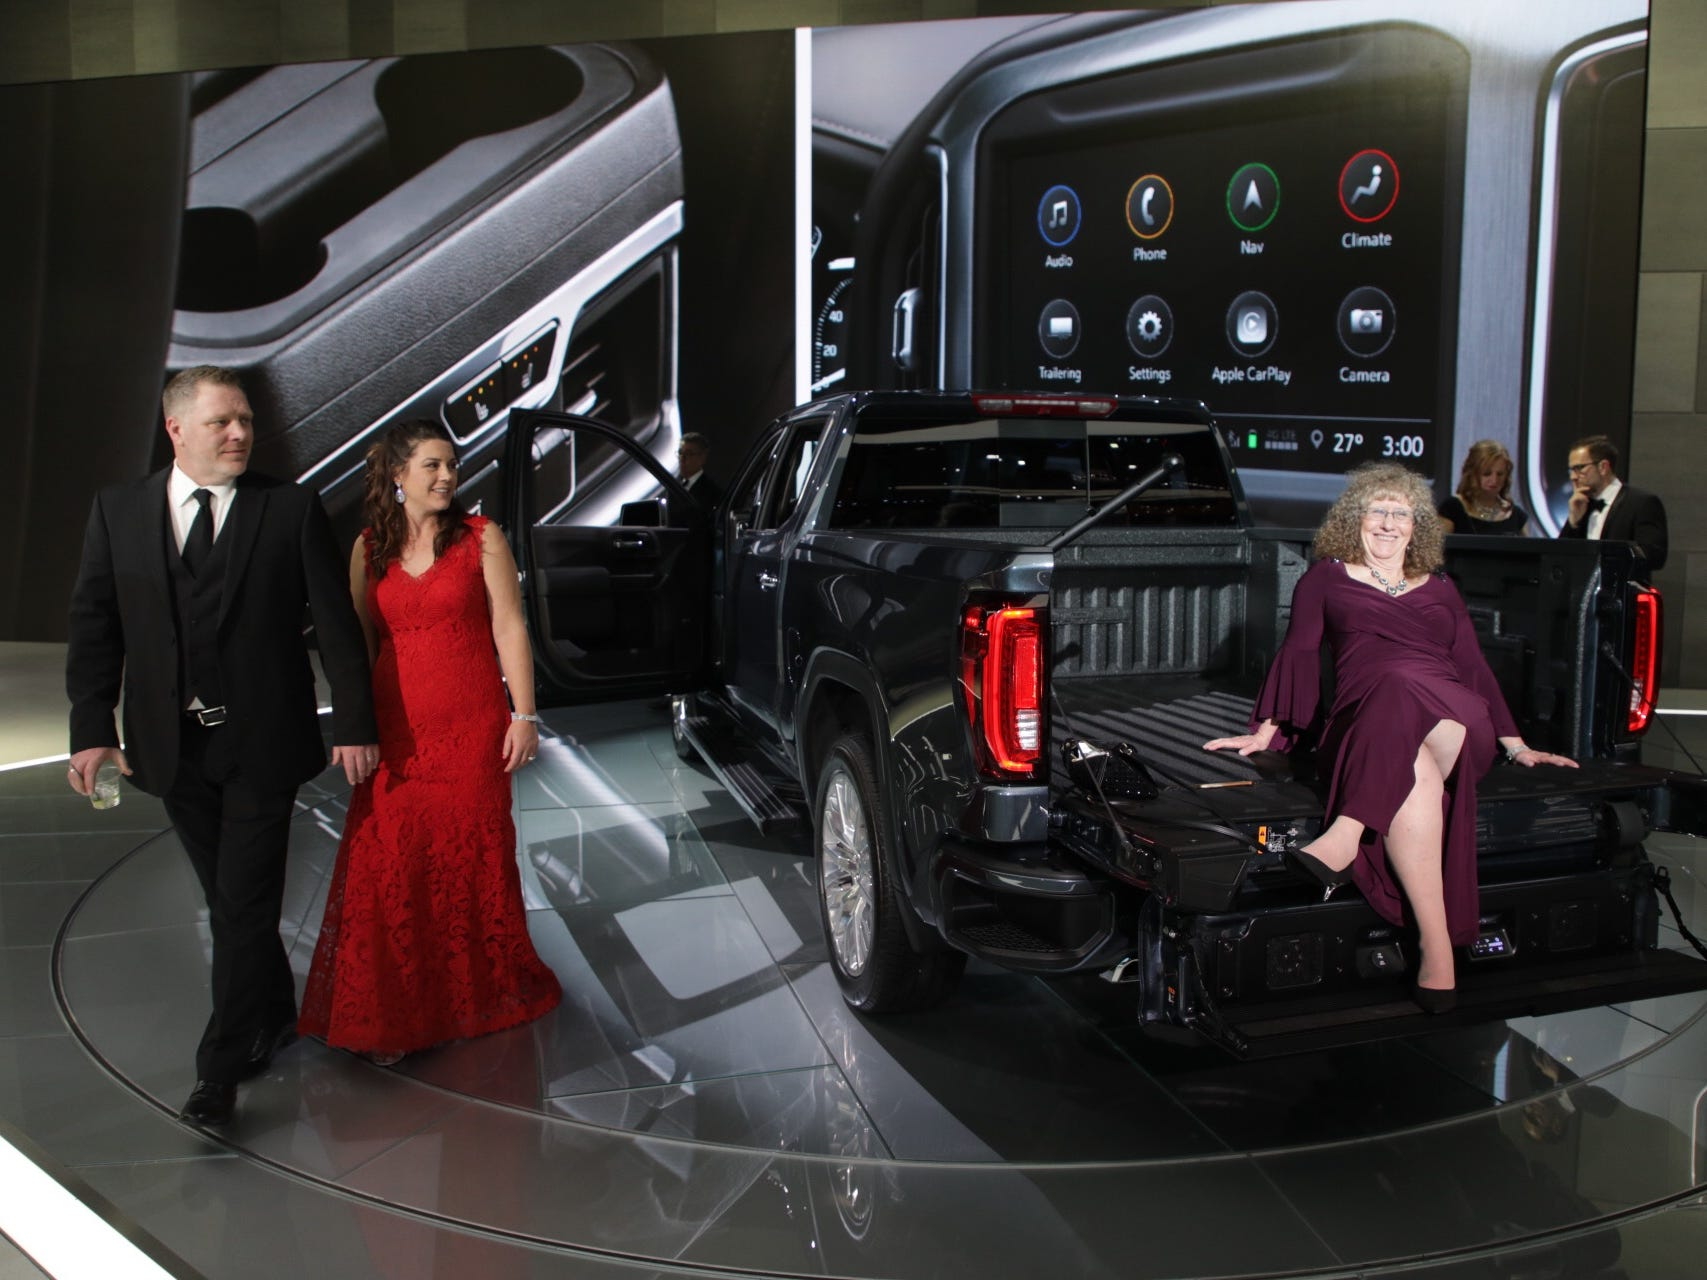 Kristen Moran of Beverly Hills poses for a photograph in the back of a Denali truck during the 2019 North American International Auto Show Charity Preview at Cobo Center in Detroit on Friday, January 18, 2019.